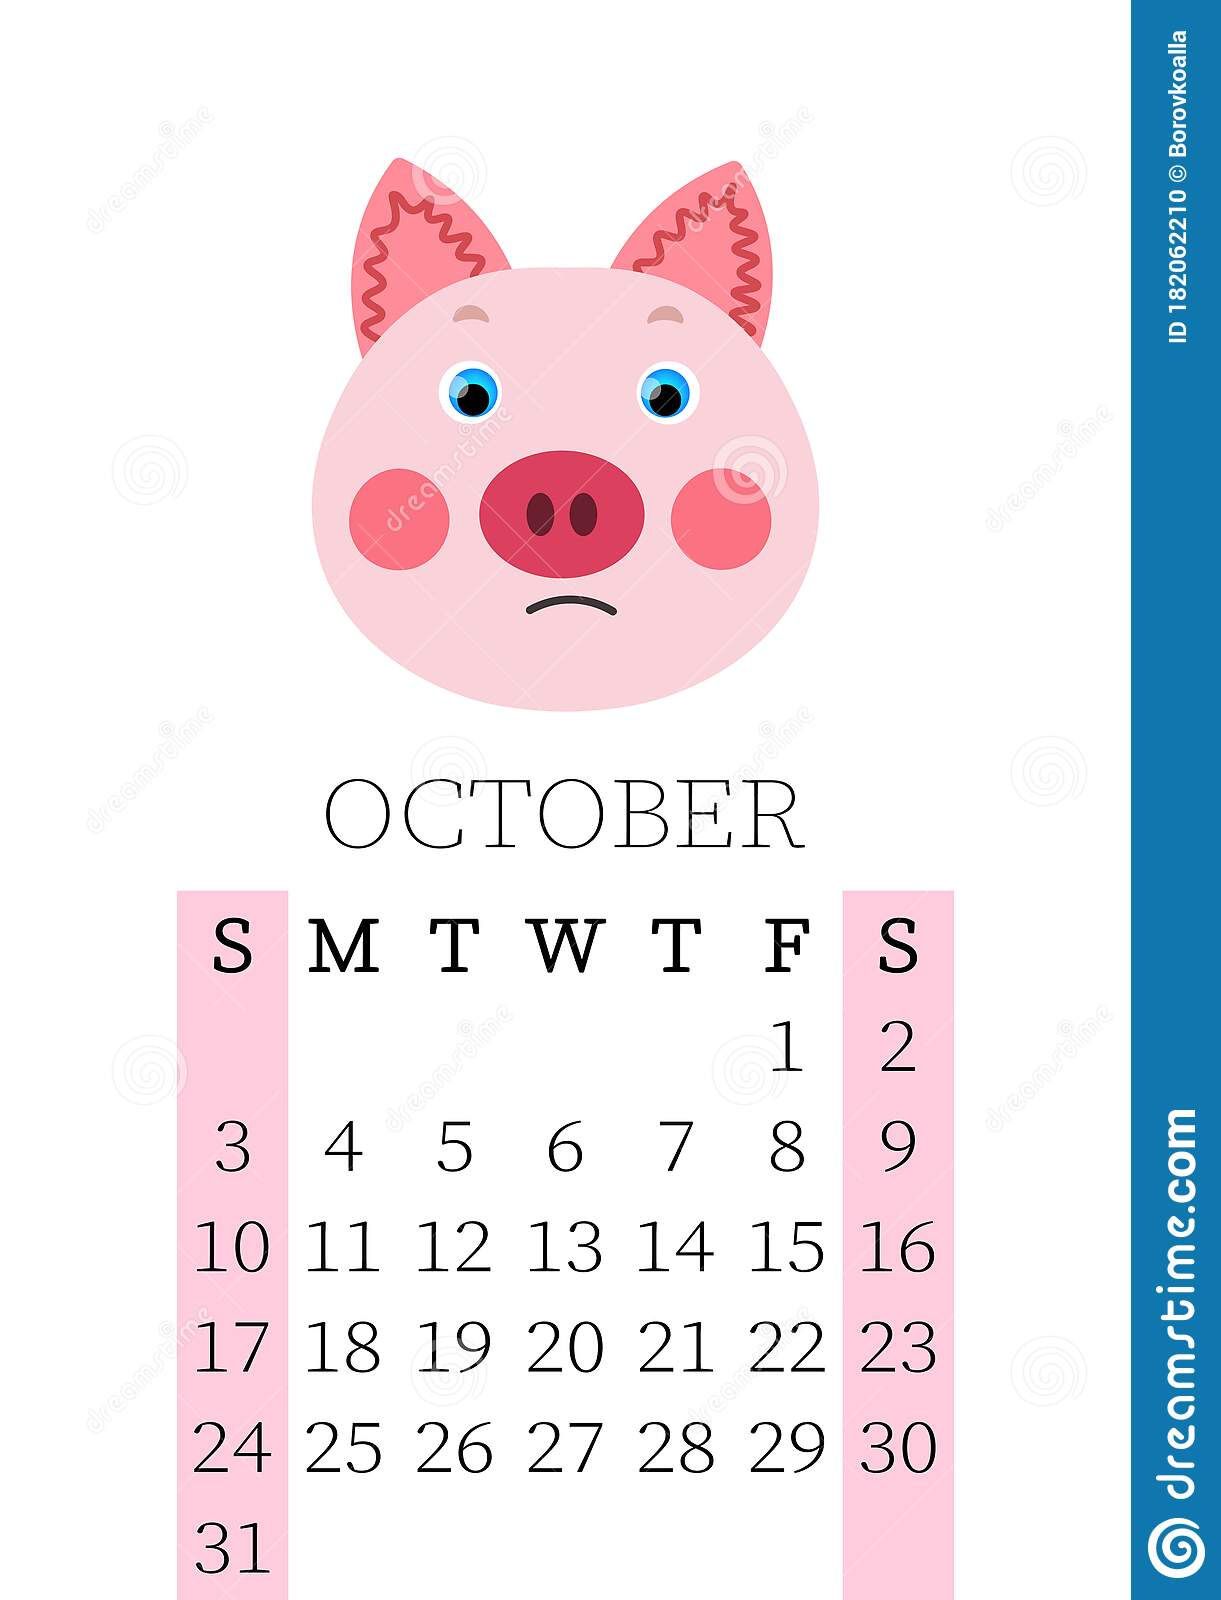 Calendar 2021. Monthly Calendar For October 2021 From Sunday intended for Sunday To Saturday Calendar